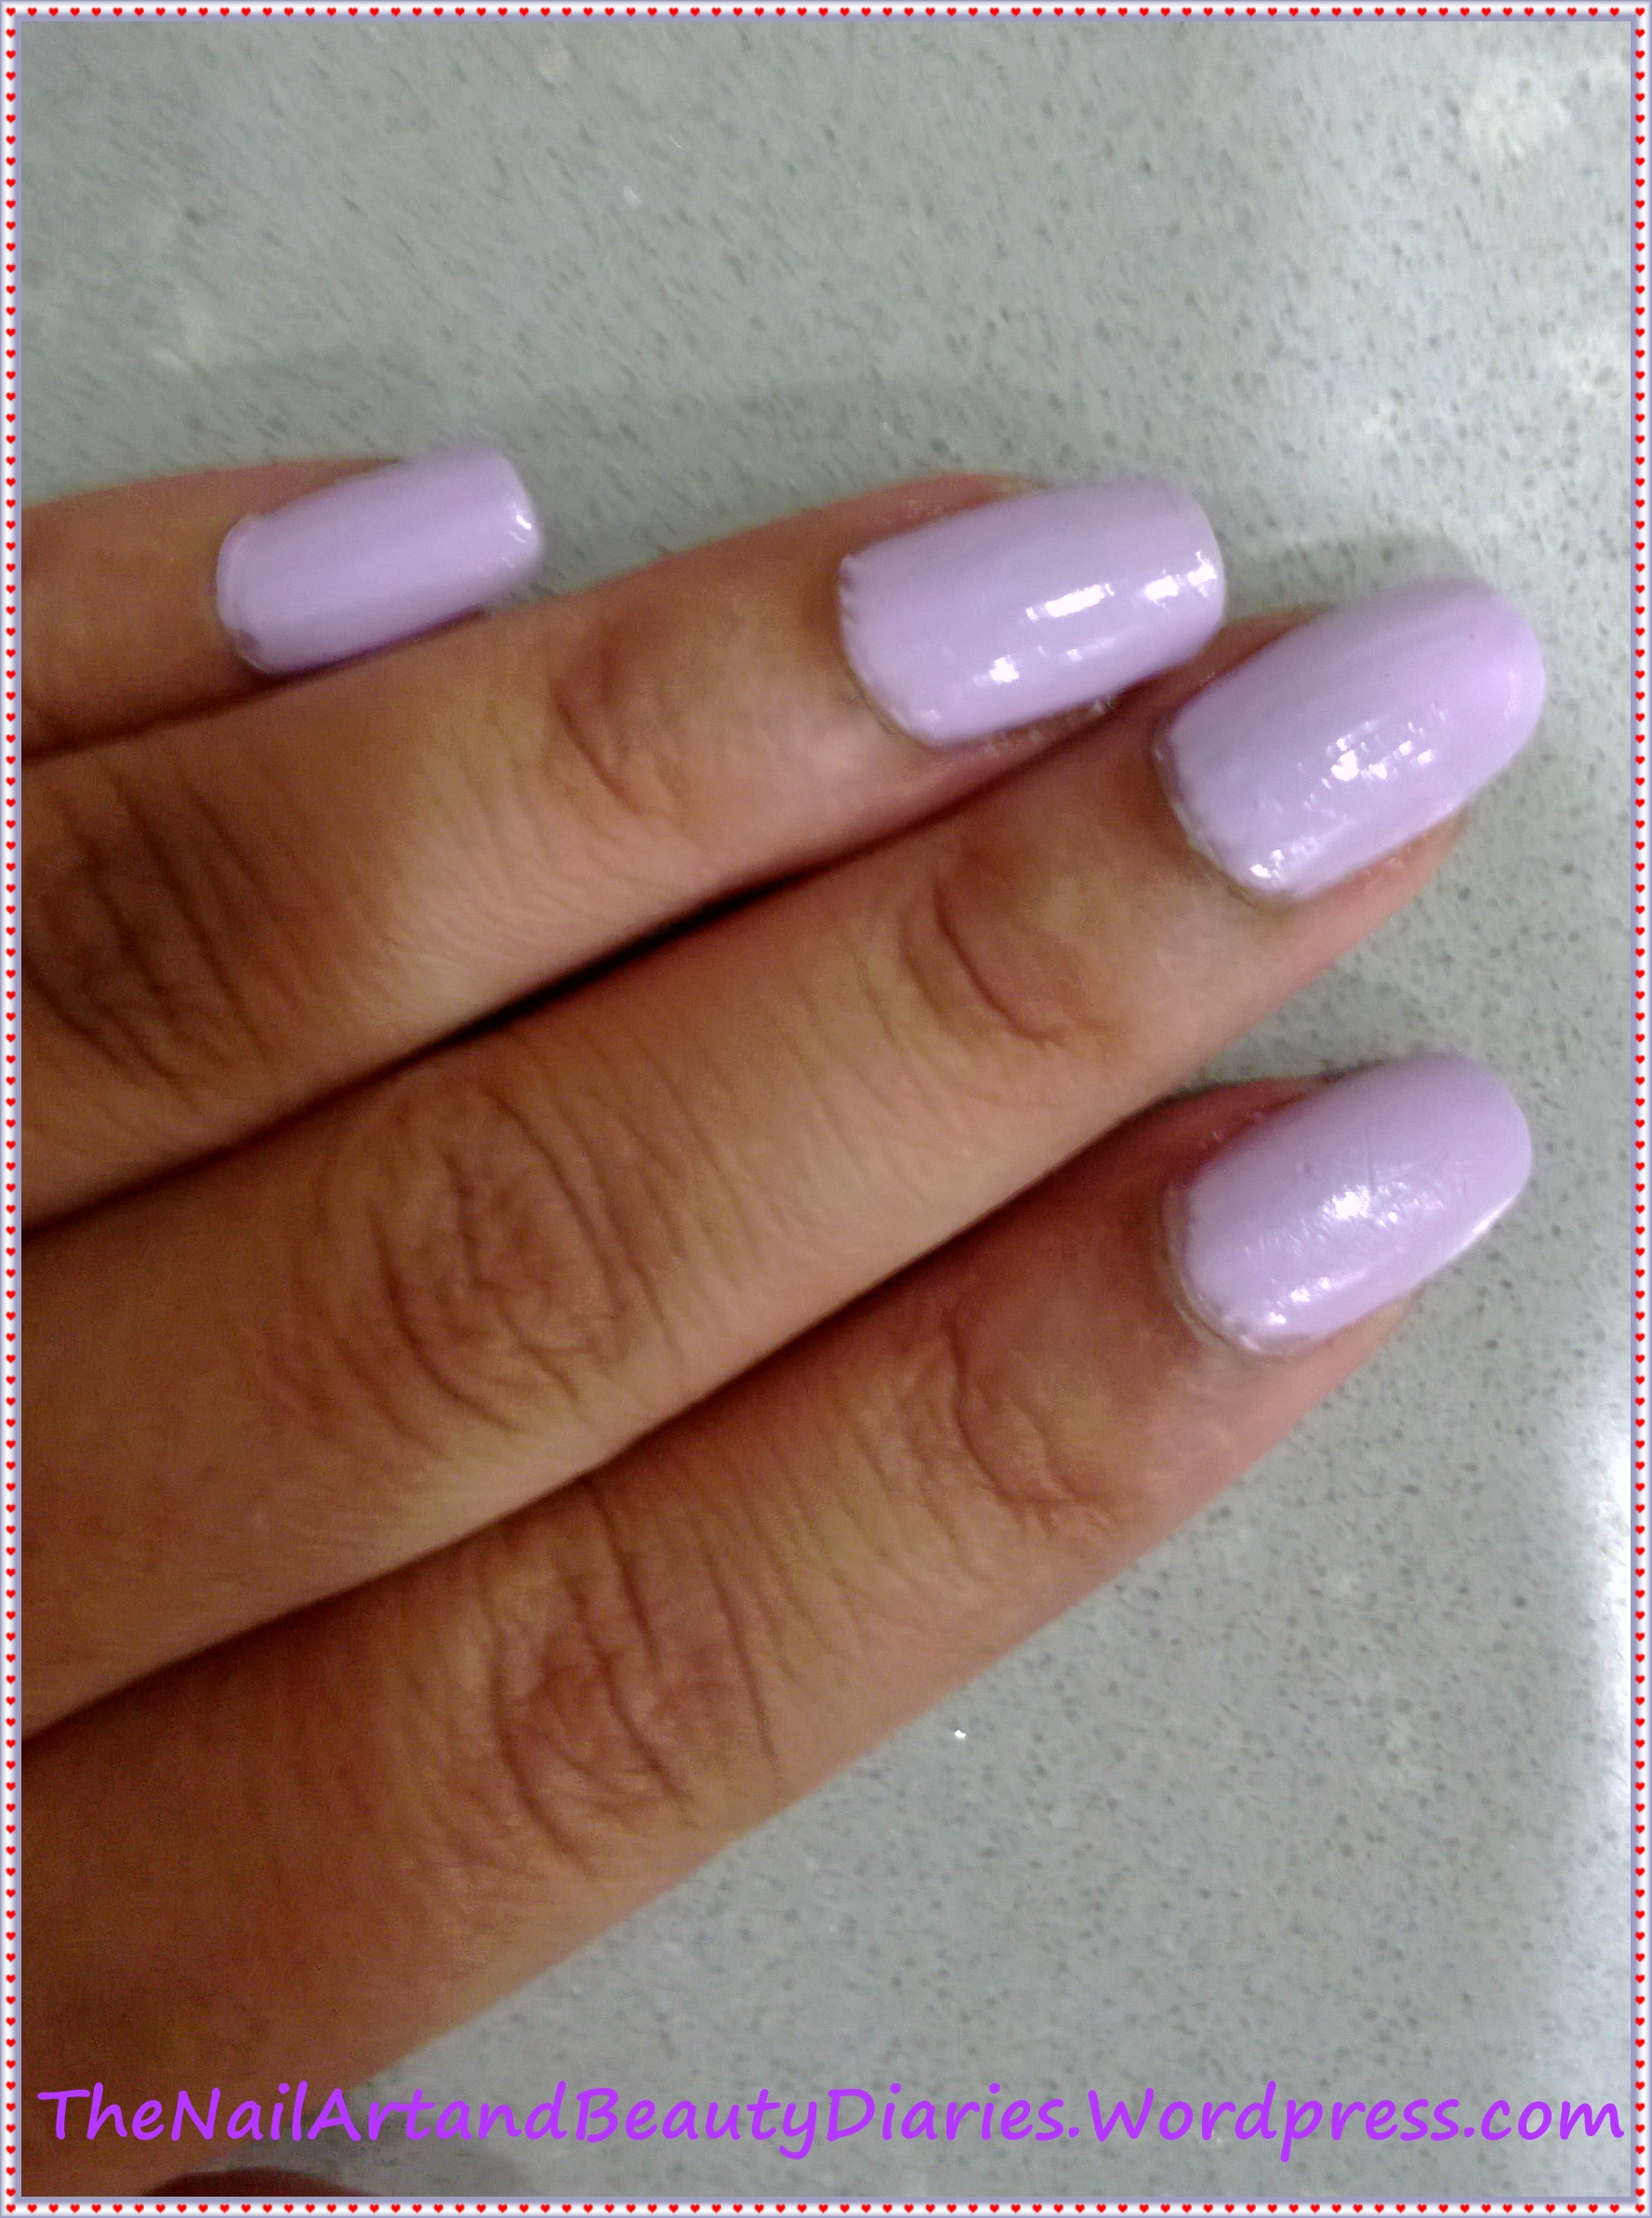 Tip Top Fairy Dust Nail Polish Review   The Nail Art and Beauty Diaries